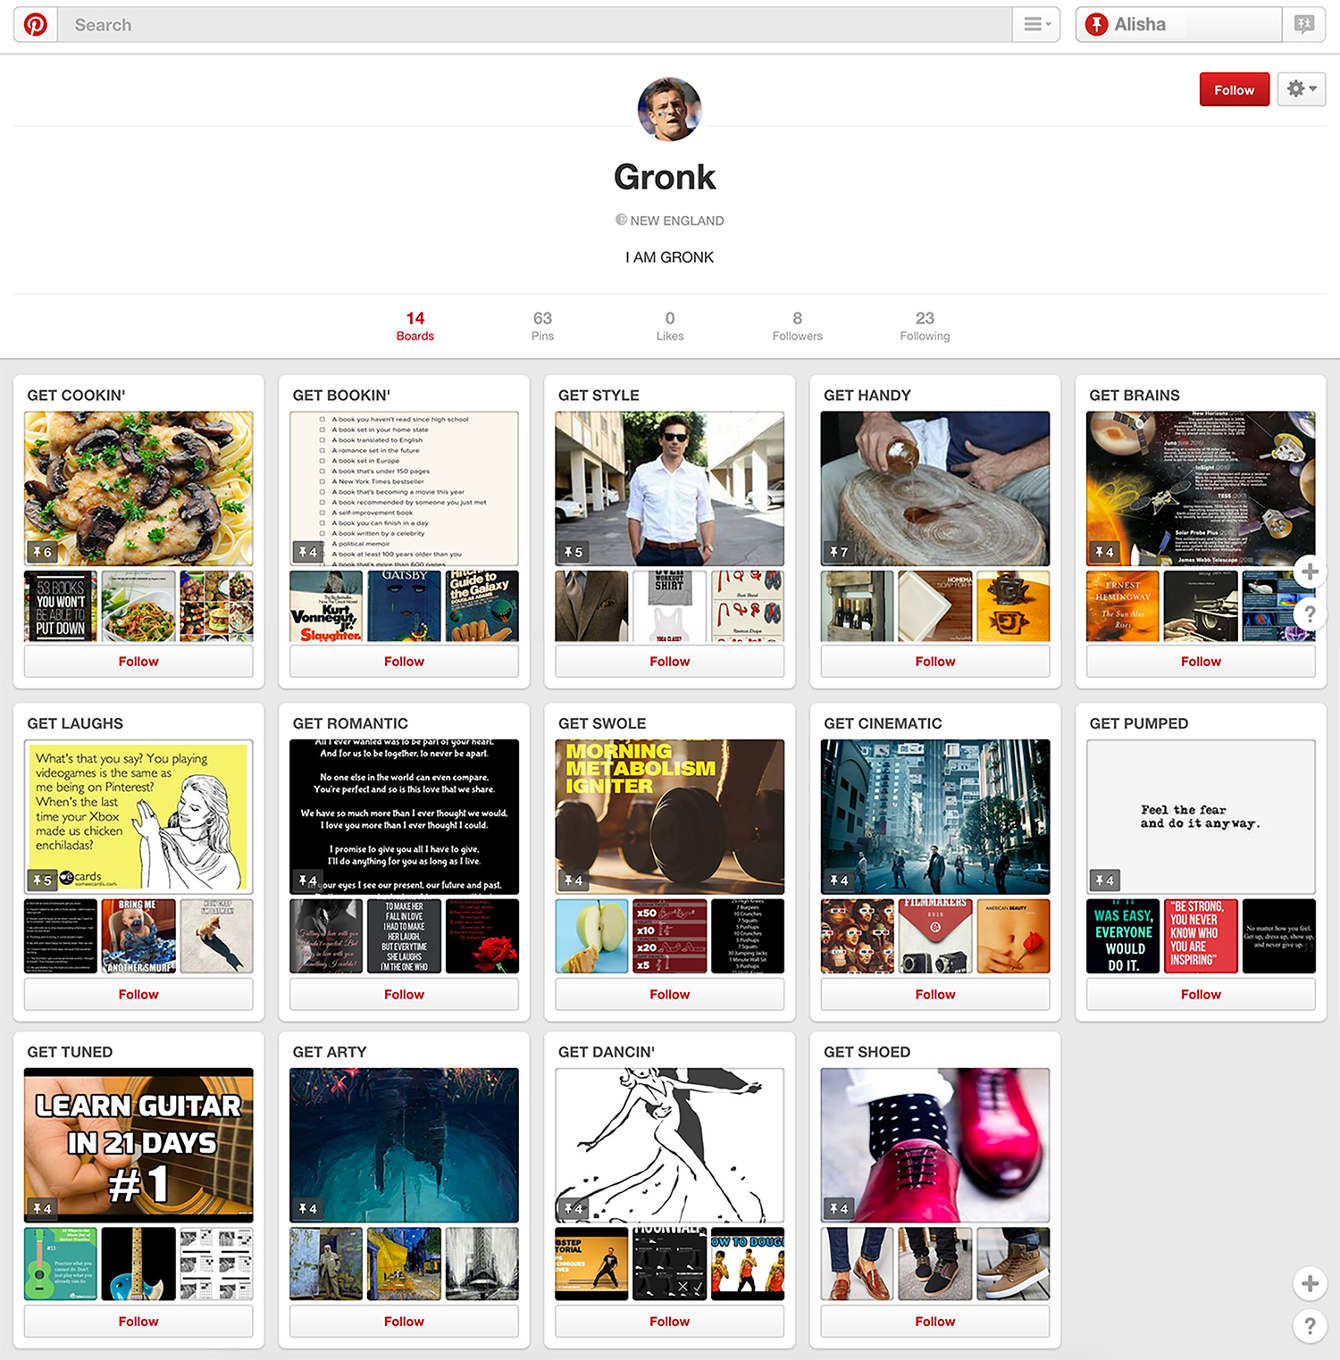 Gronk's Personal Pinterest Page